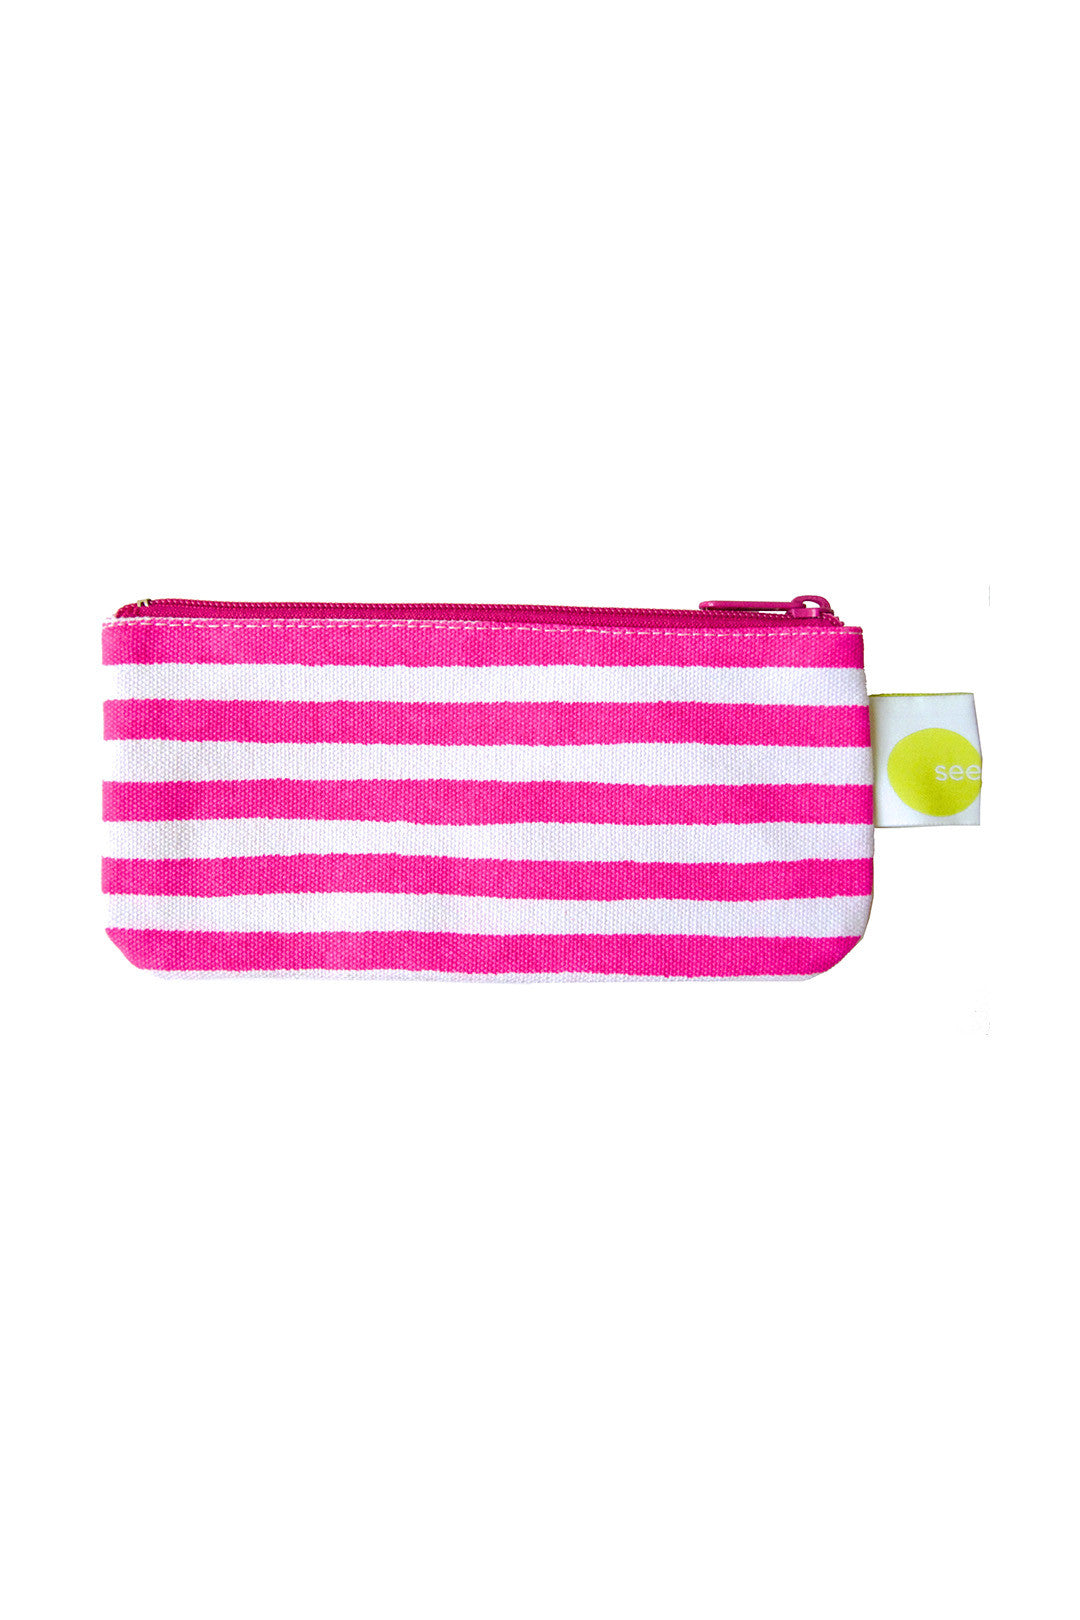 3574fdedf6 Share Share on Facebook Tweet Tweet on Twitter Pin it Pin on Pinterest. See  Design See Design Cosmetic Bag Pencil ...